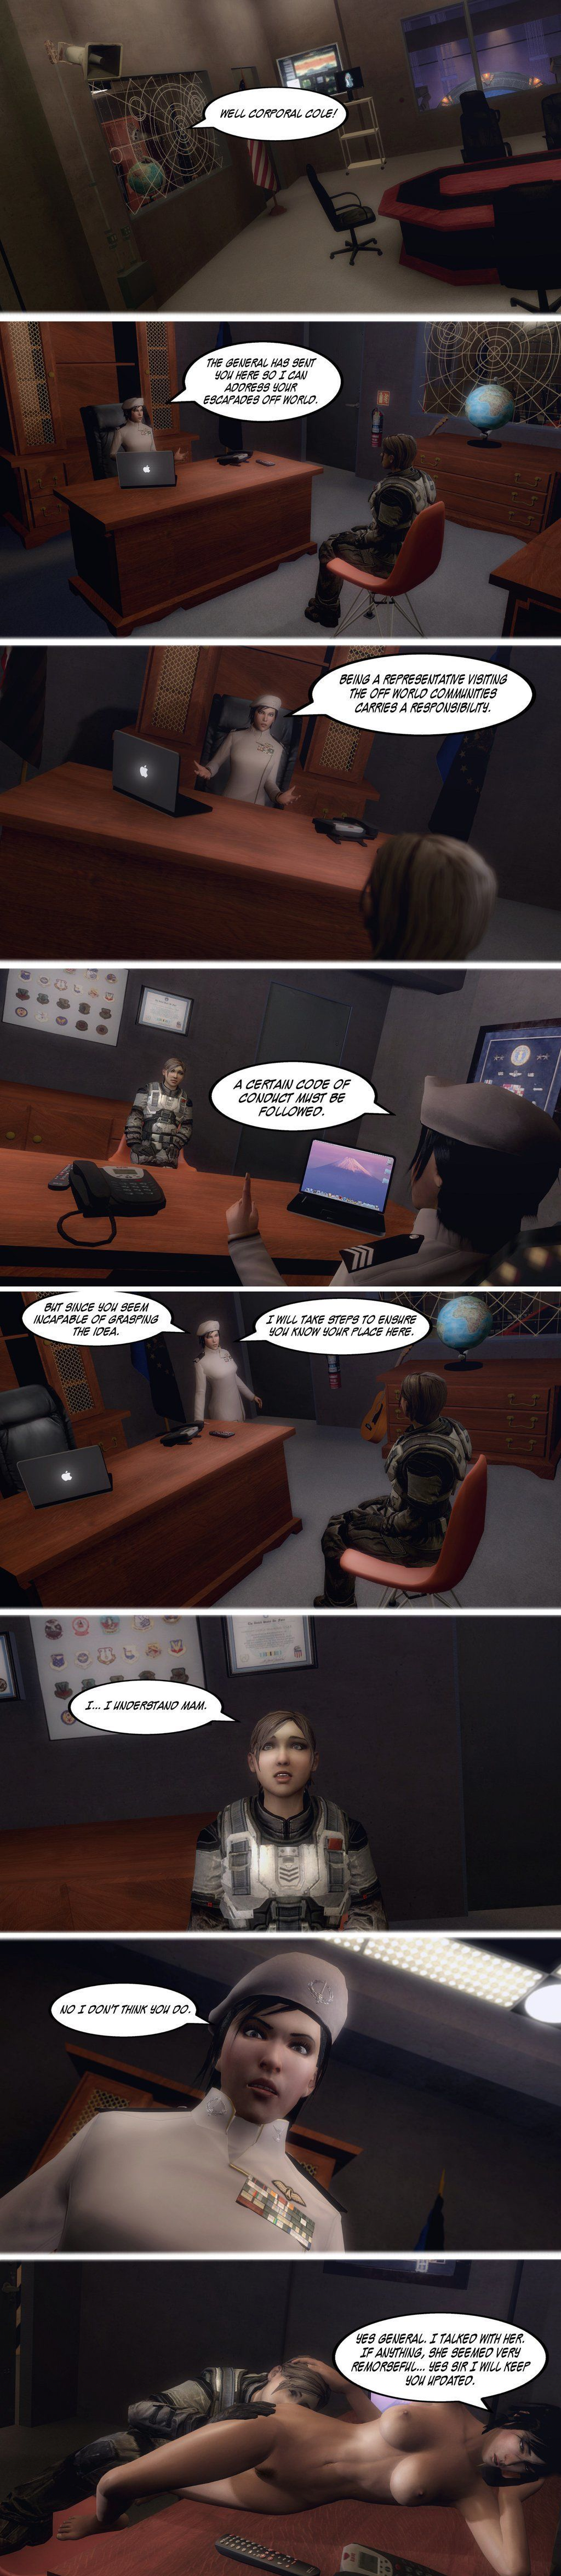 Updated gallery of the works of Rastifan Pt 2 (Comic Shorts) - part 2